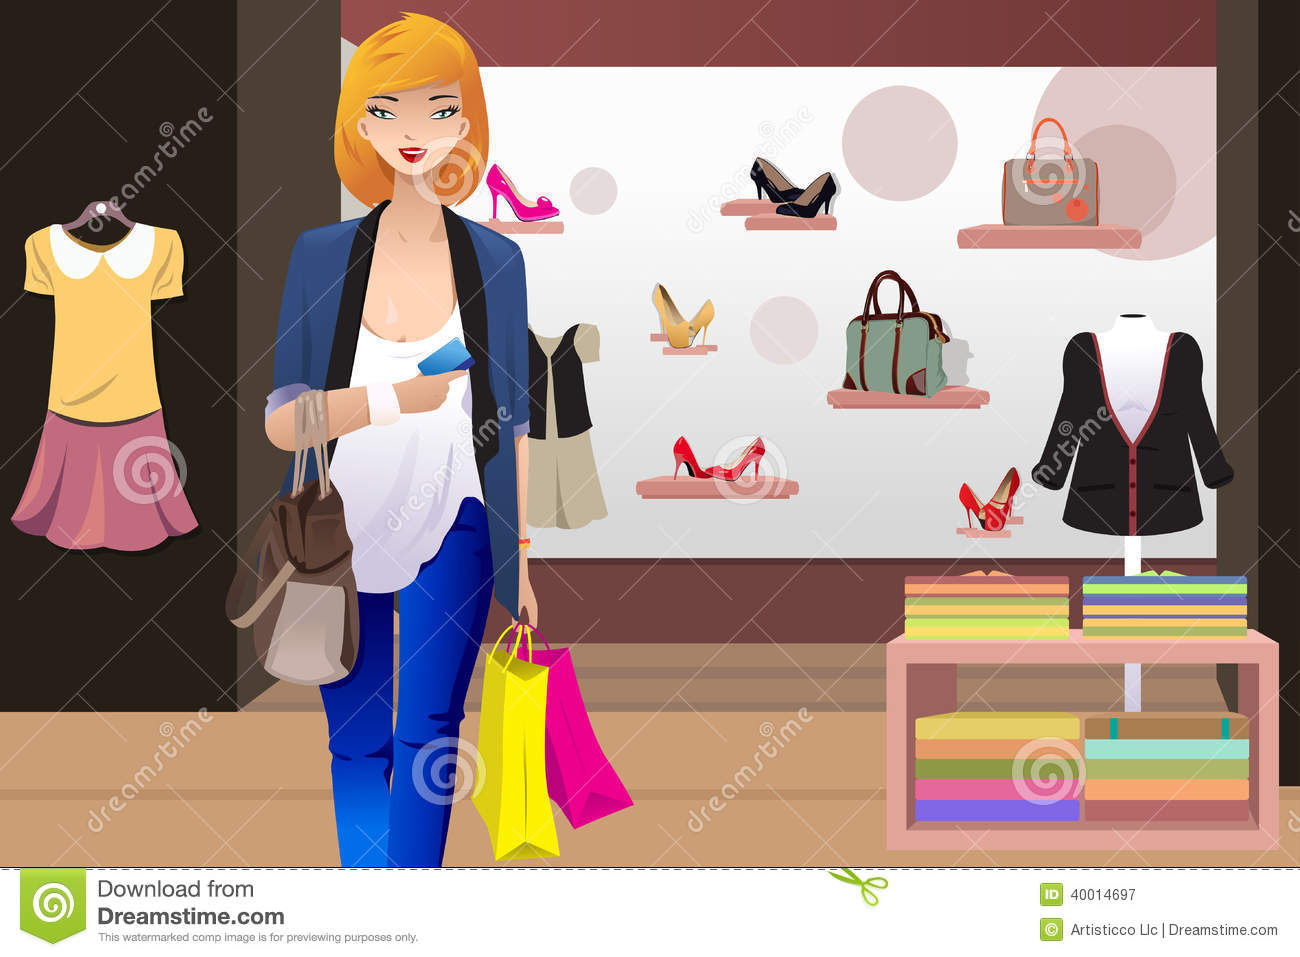 Clip Art Clothing Store The clothing store royalty